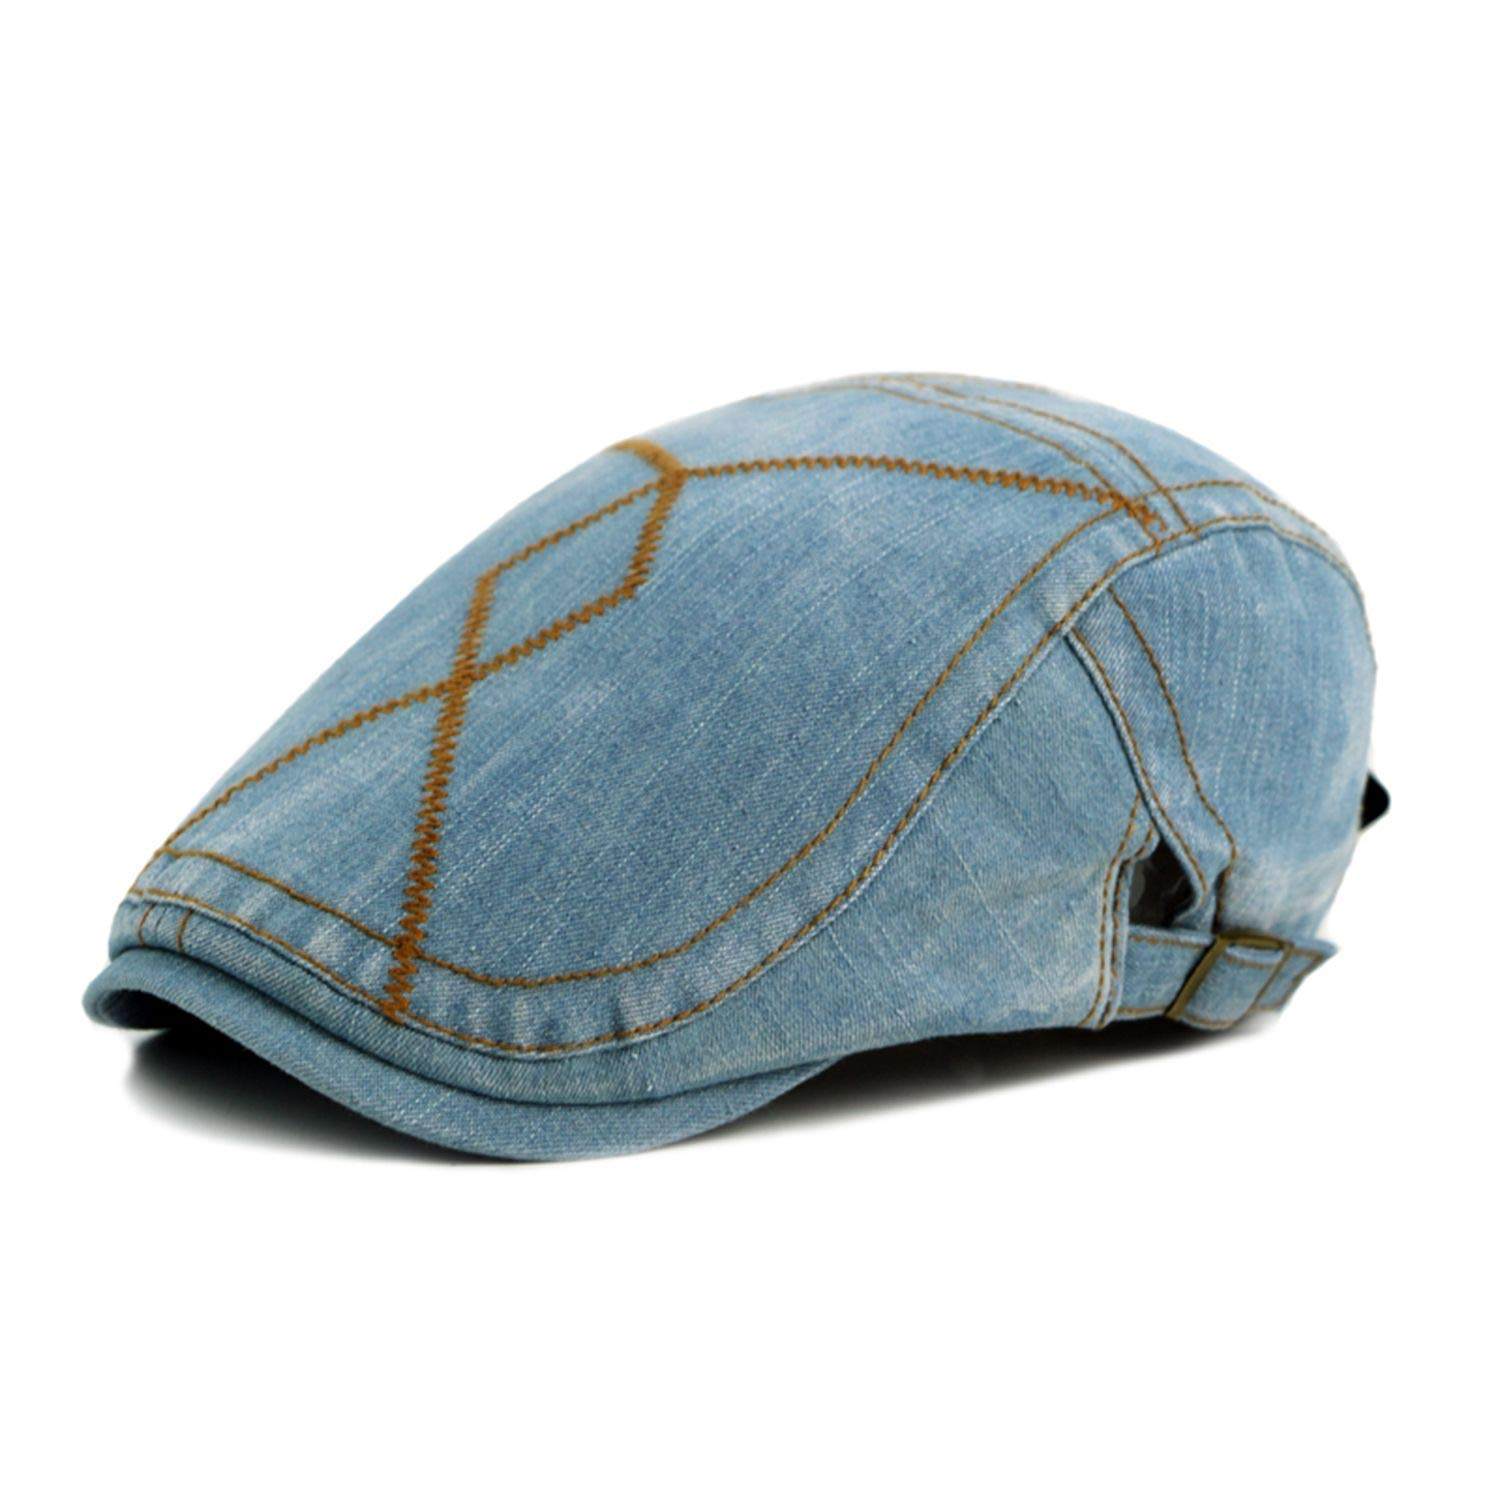 Hulione Fashion Spring Summer Jeans Hats for Men Casual Unisex Denim Beret Caps Outdoors Flat Cap for Cowboy